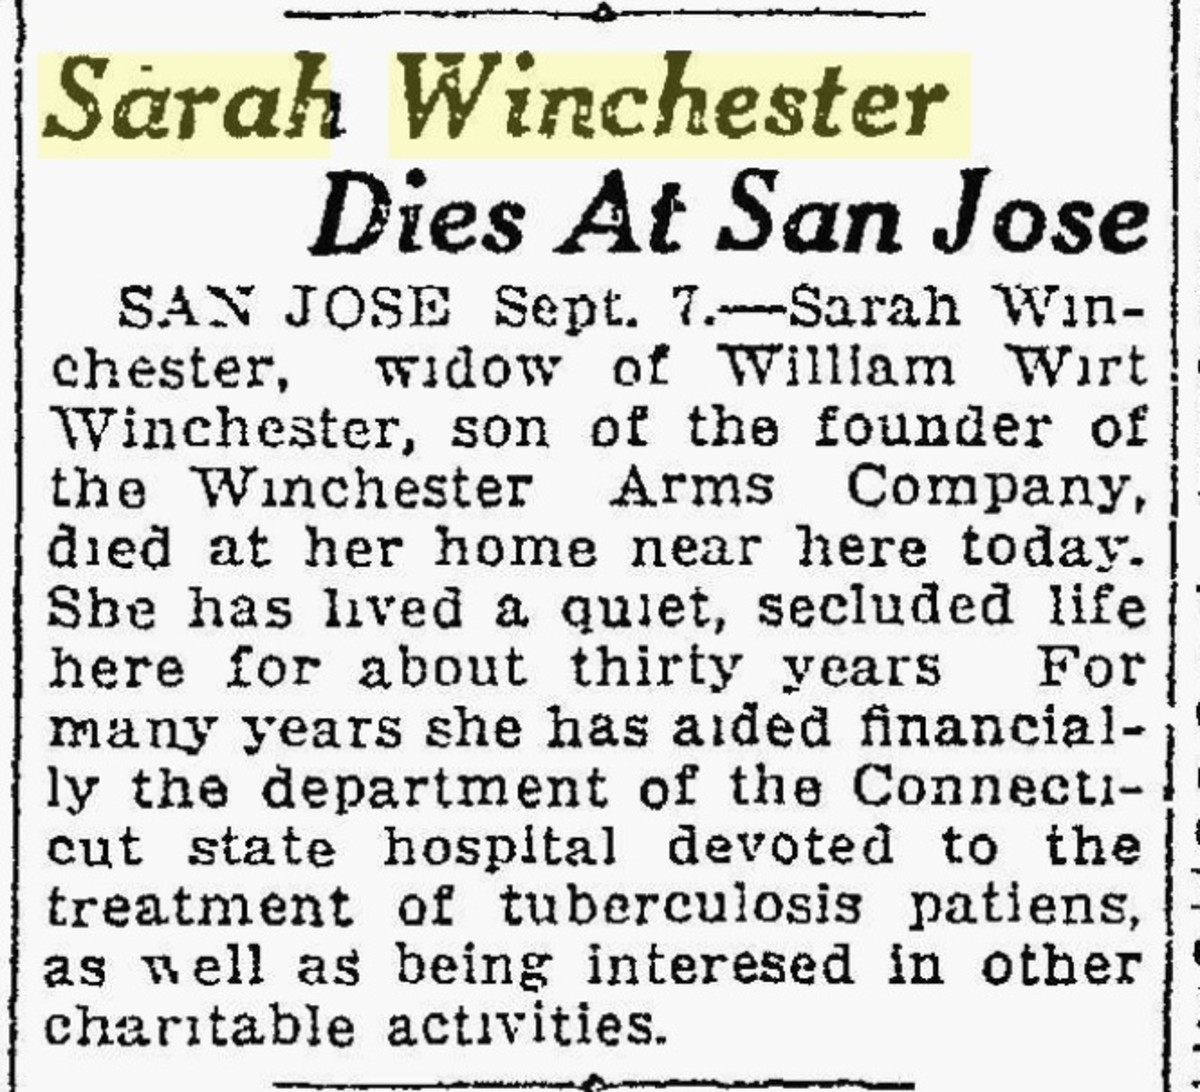 A brief announcement of her death in the local newspaper